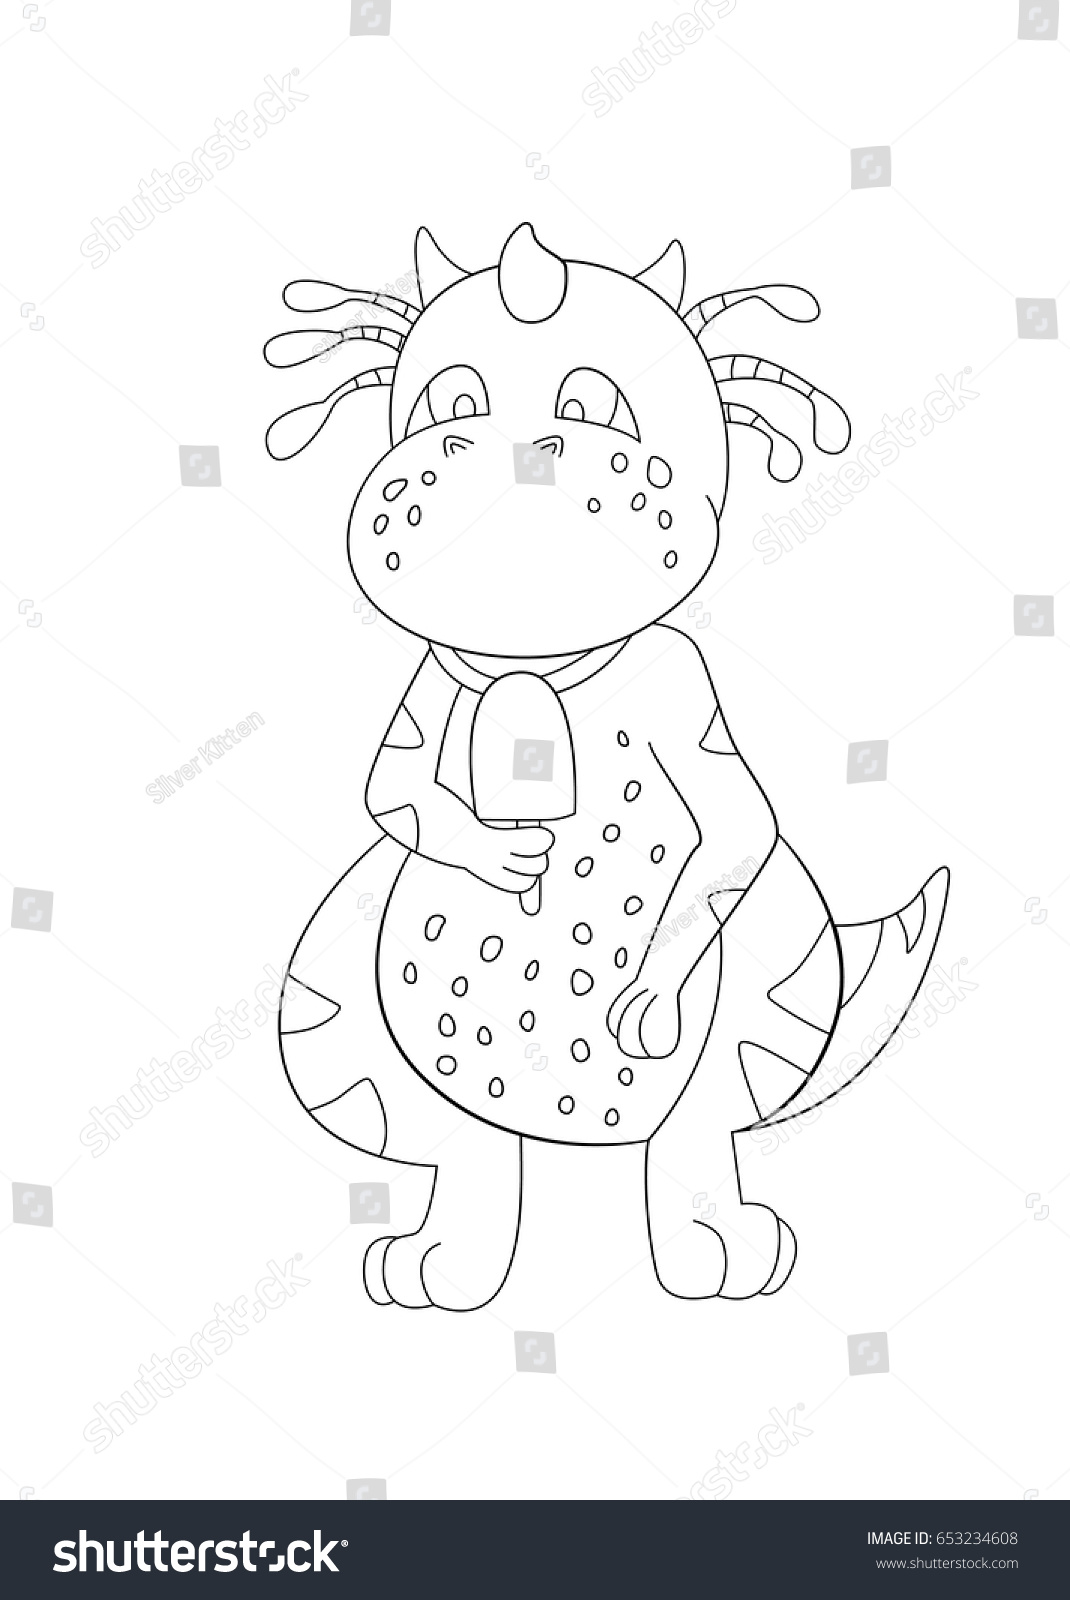 coloring page dragon eating ice cream stock vector 653234608